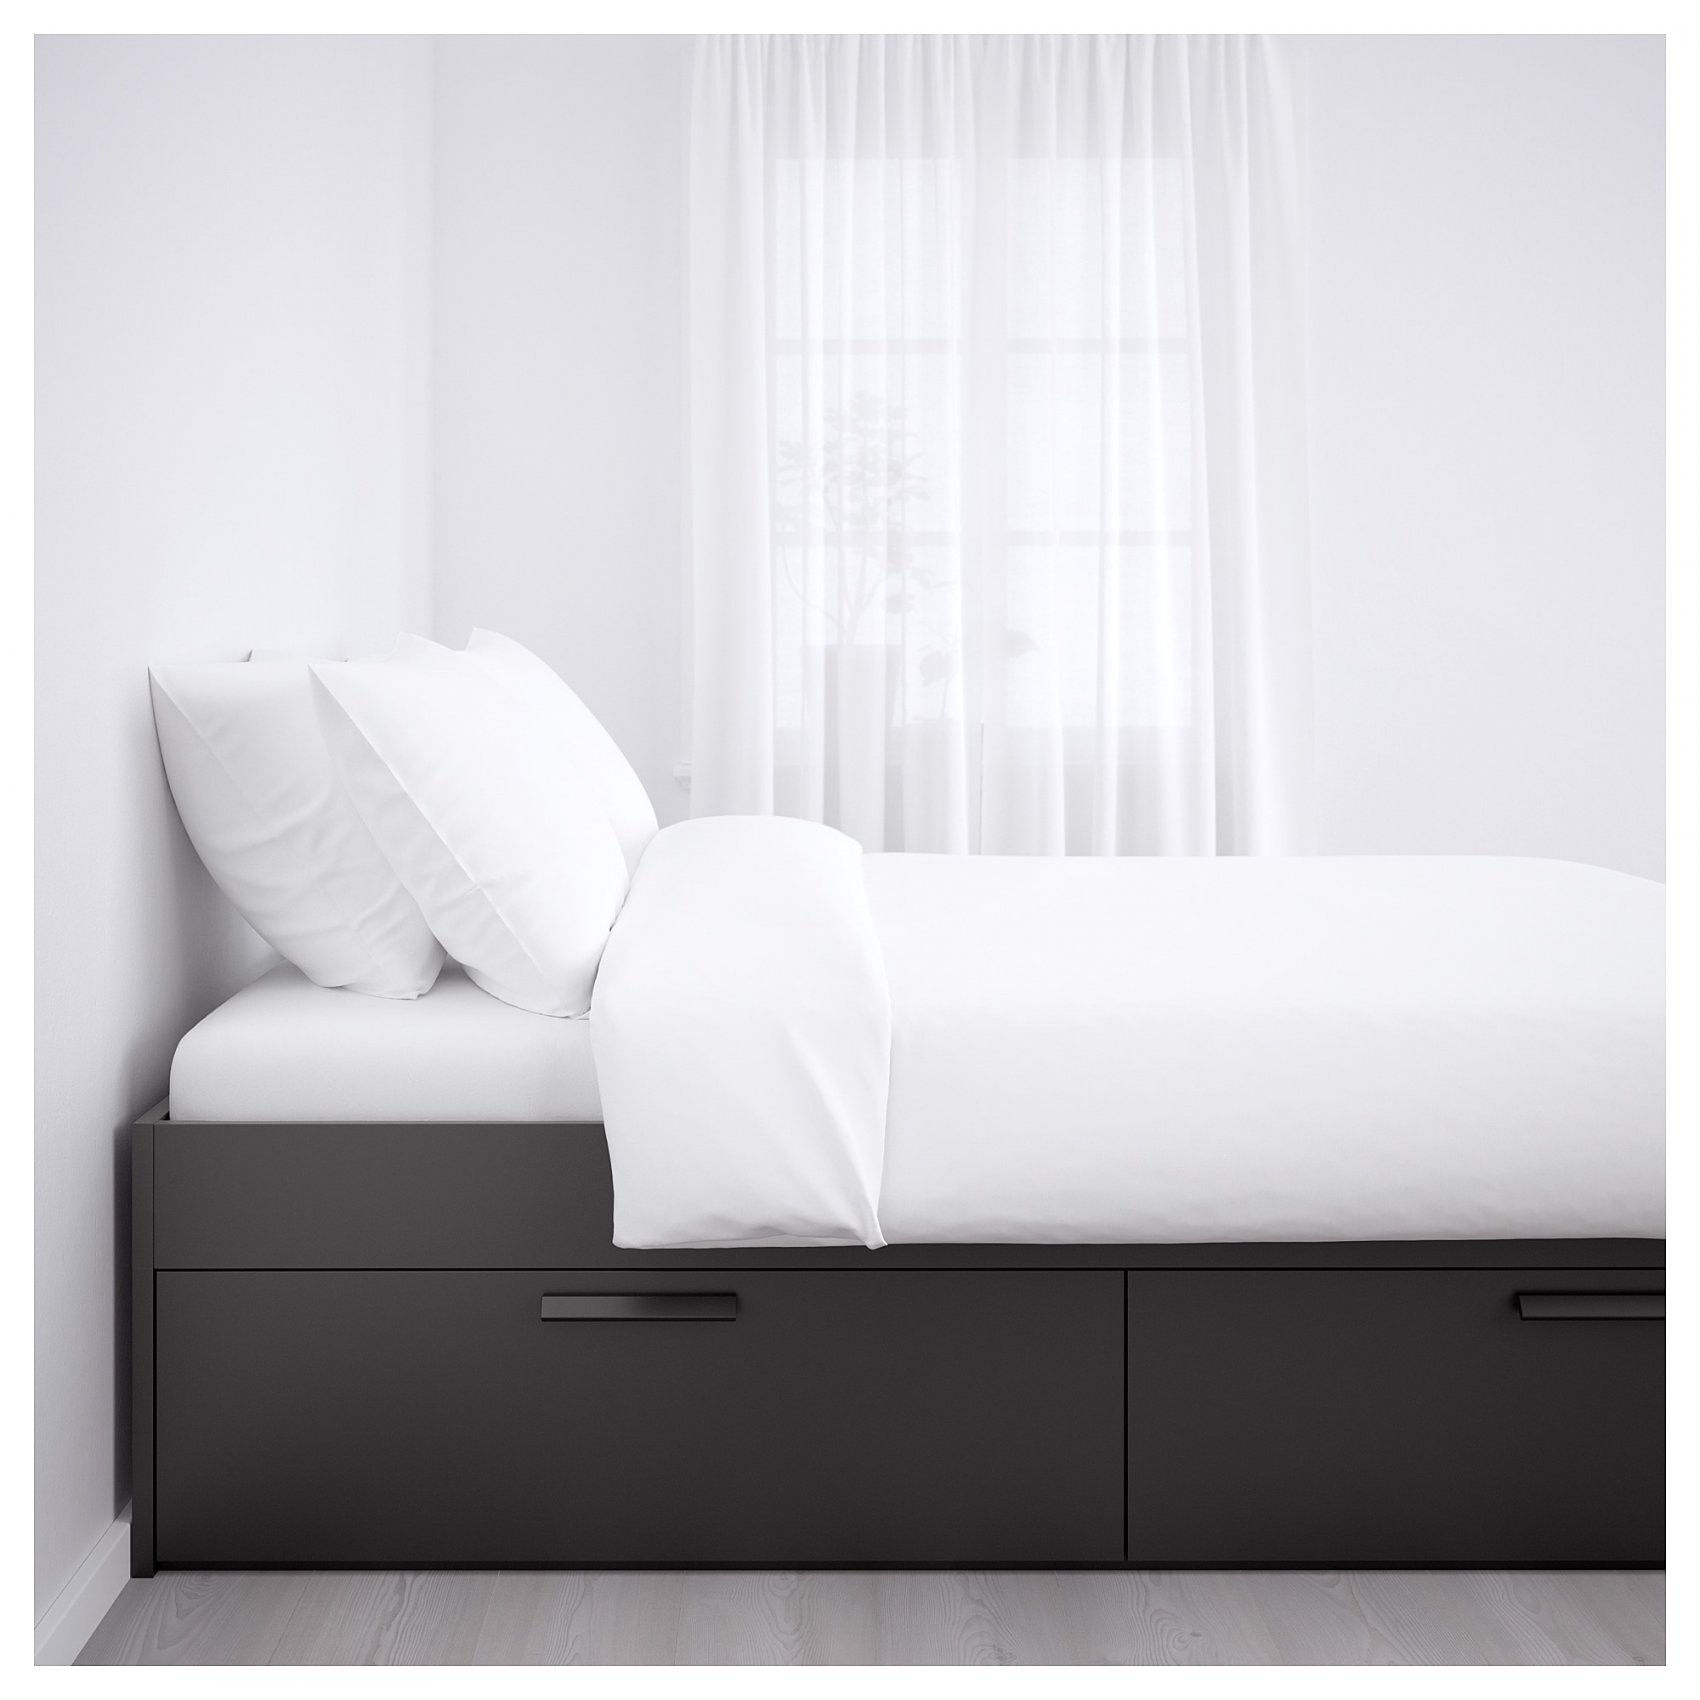 ikea brimnes bed natuurlijke der hervorragend ikea schrank brimnes von ikea brimnes bett 180x200. Black Bedroom Furniture Sets. Home Design Ideas